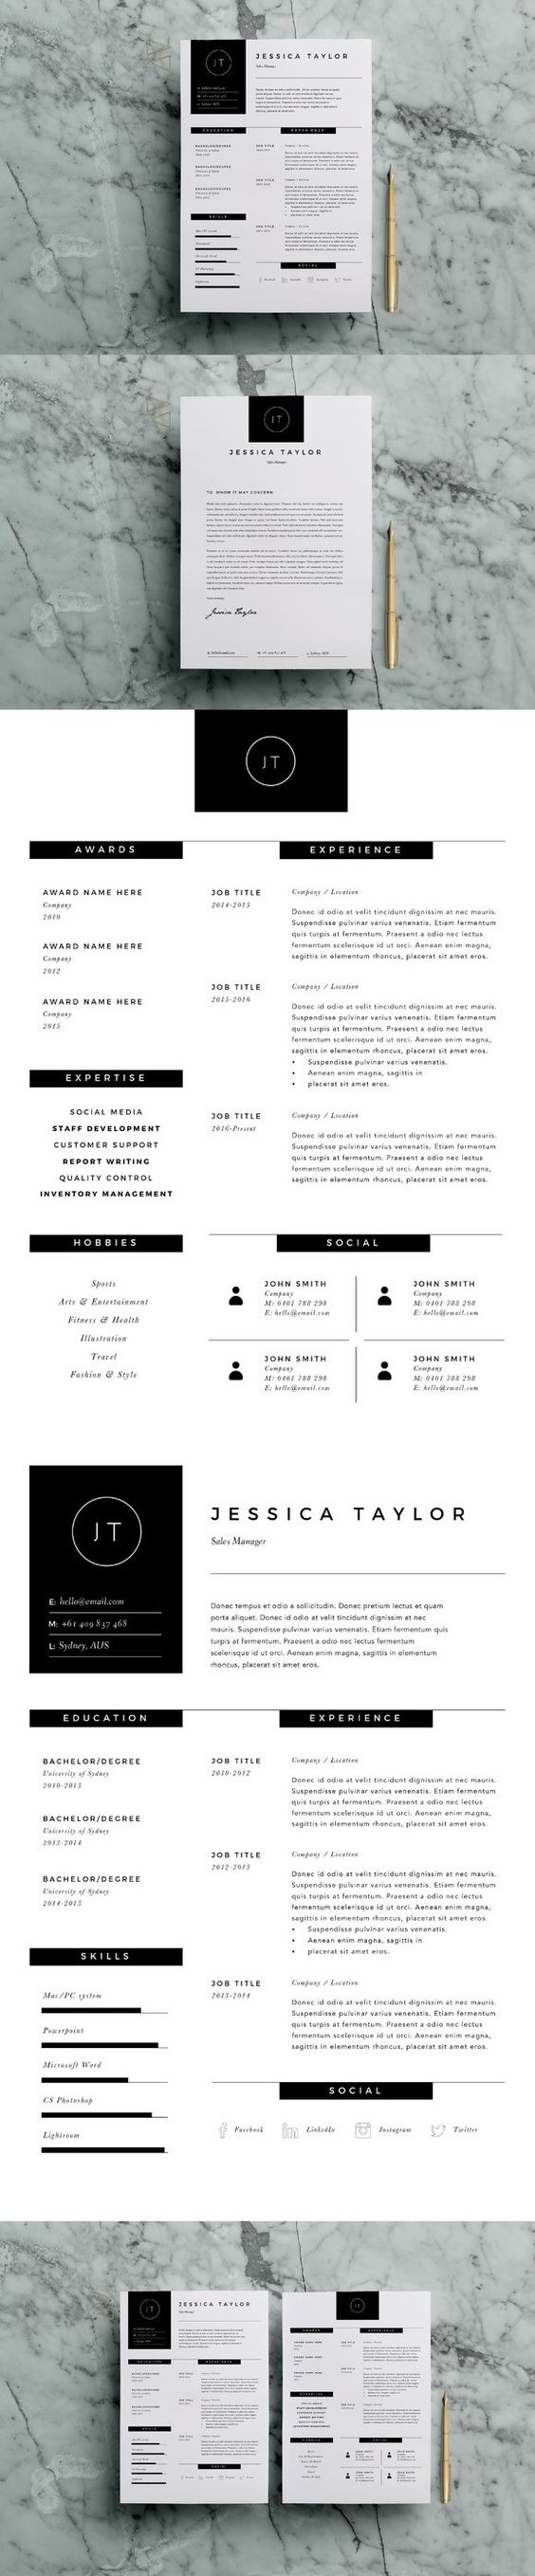 Microsoft Word 2007 Template For Resume%0A Professional Resume V   by Graphicsegg on Creative Market   resume    Pinterest   Professional resume  Cv template and Template